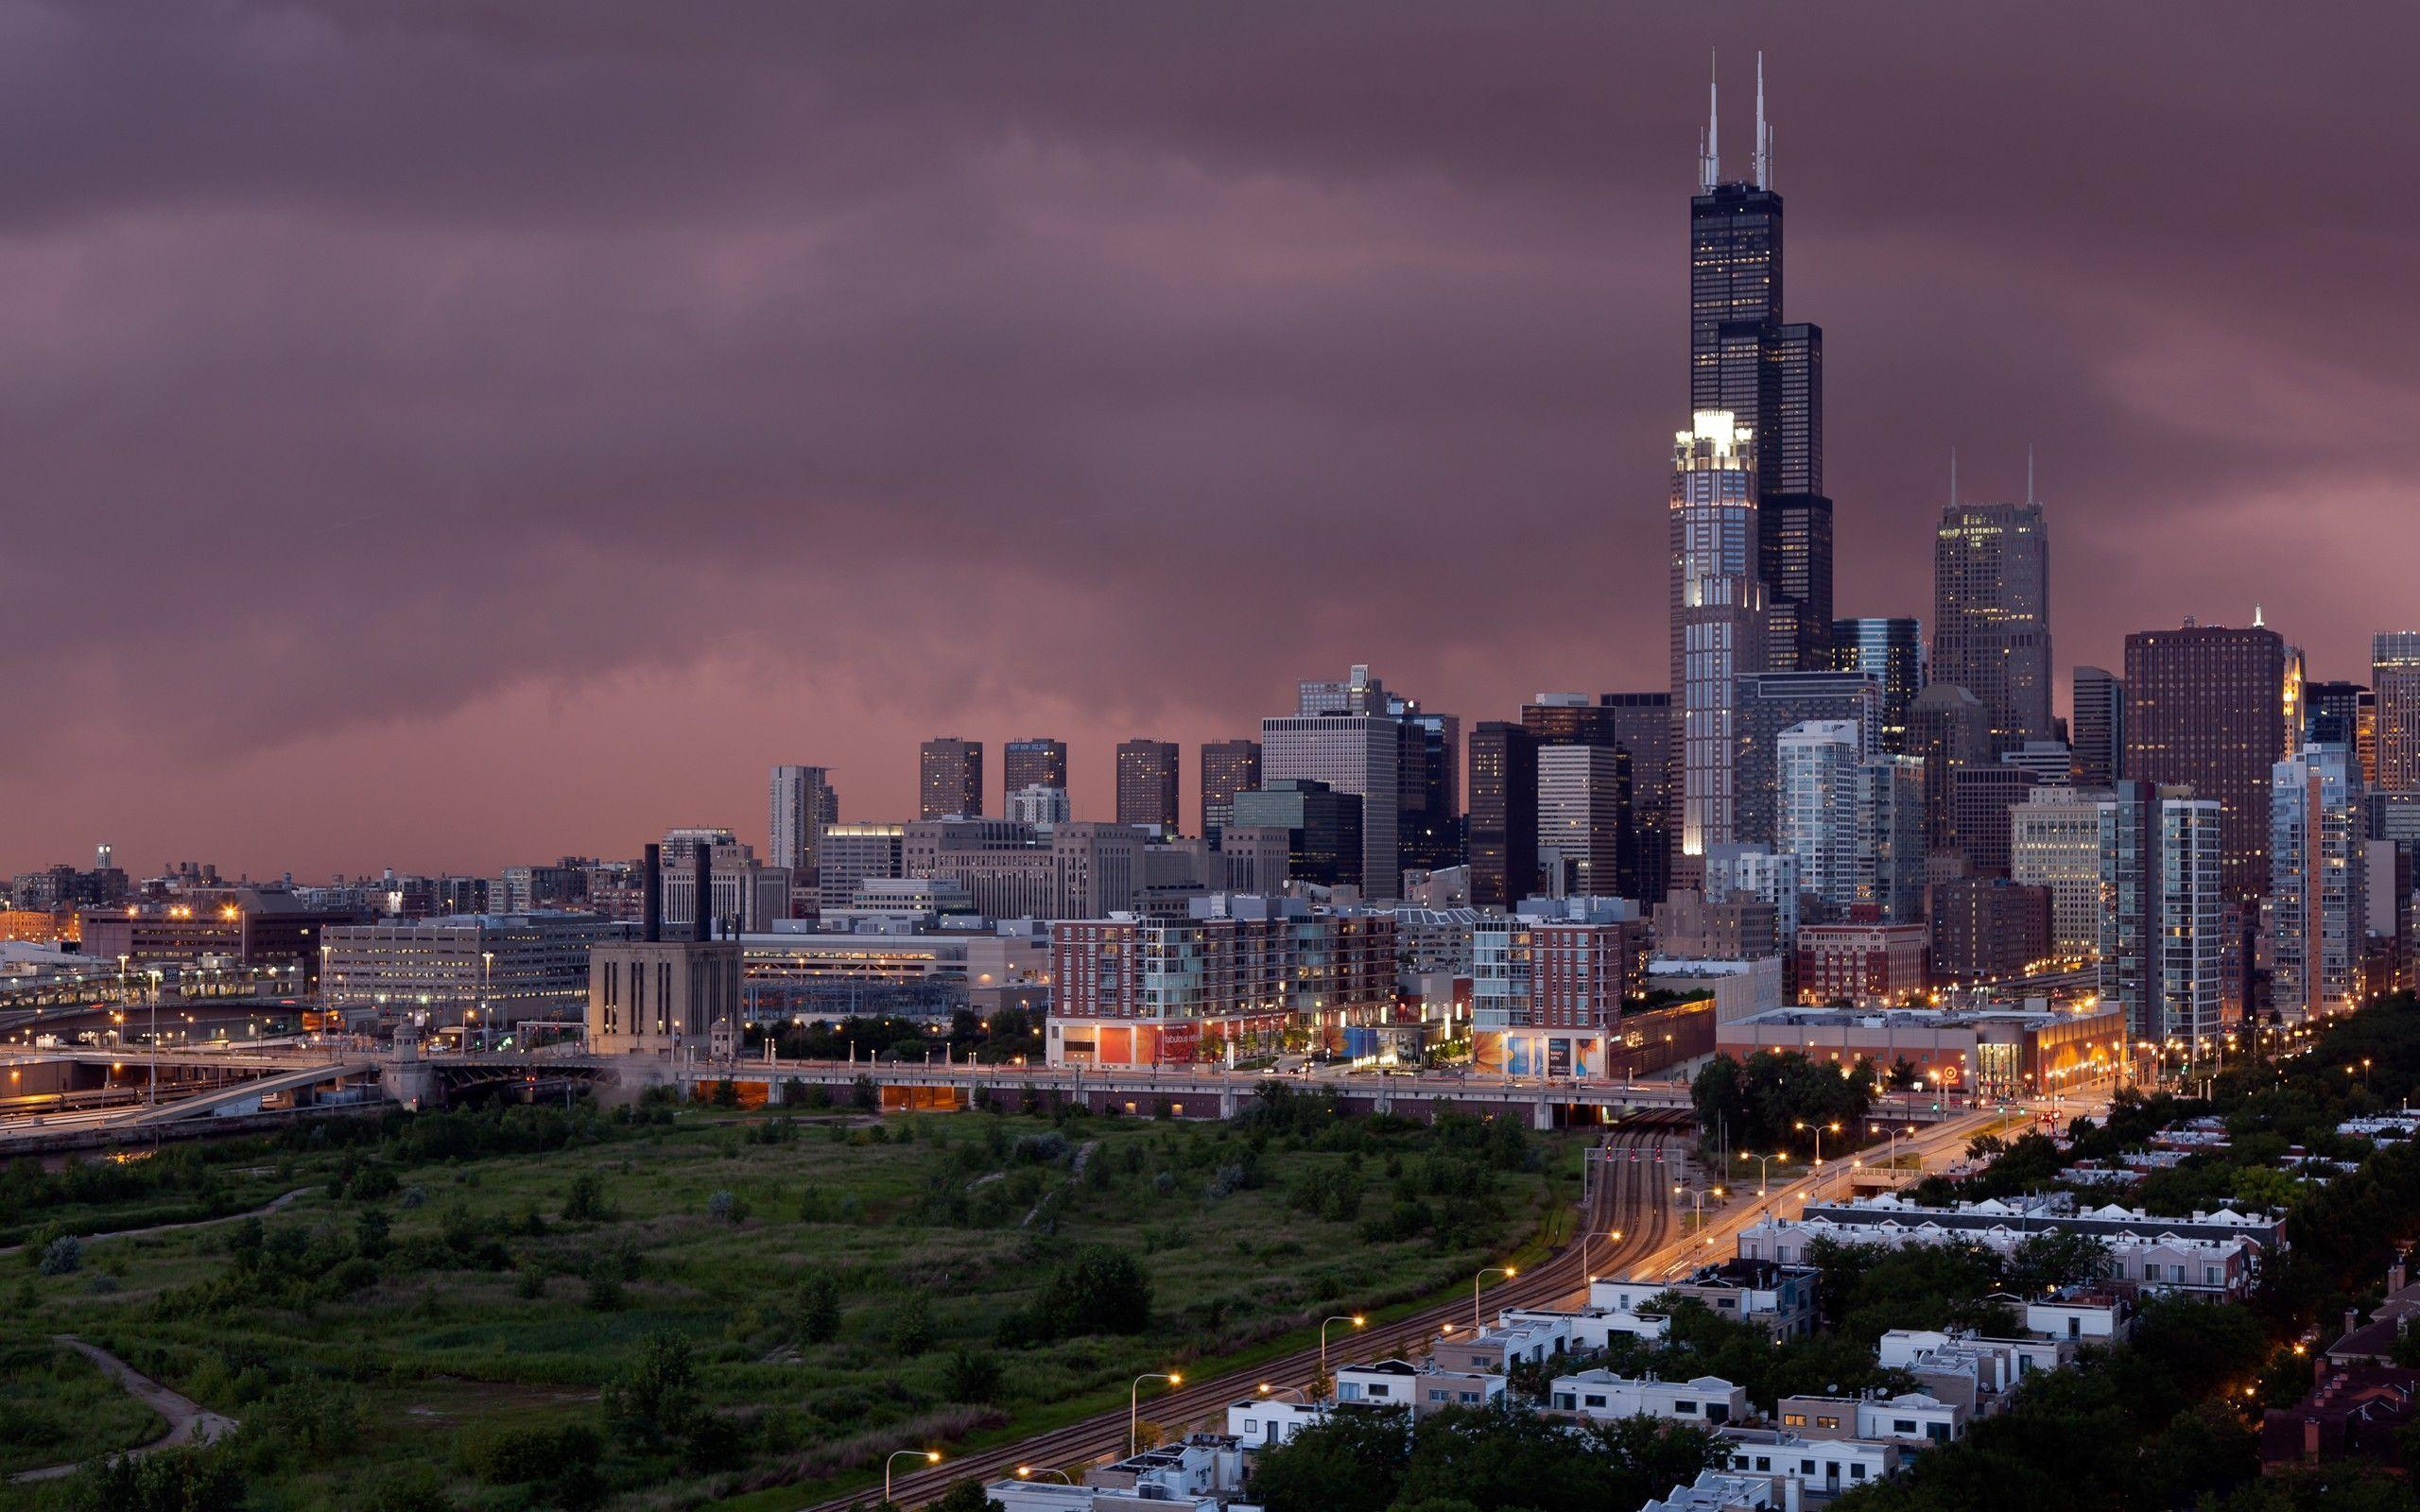 chicago windy city wallpapers - photo #5